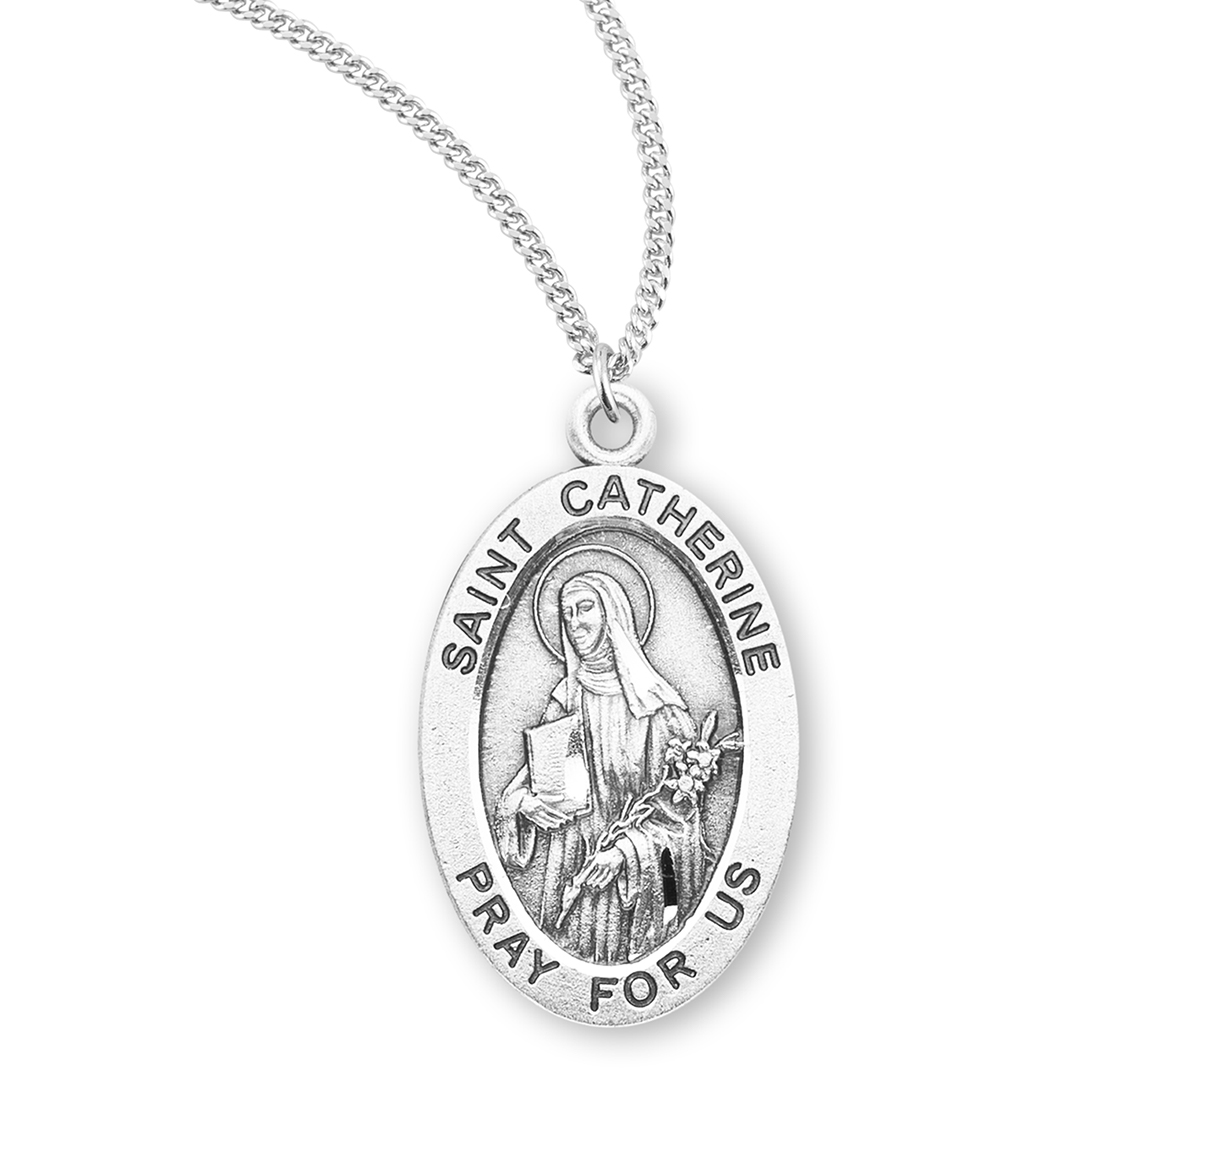 925 Sterling Silver Saintchristopher Football Medal Pendant Charm Necklace Sport Religious Patron Saint St Christopher Fine Jewelry Gifts For Women For Her